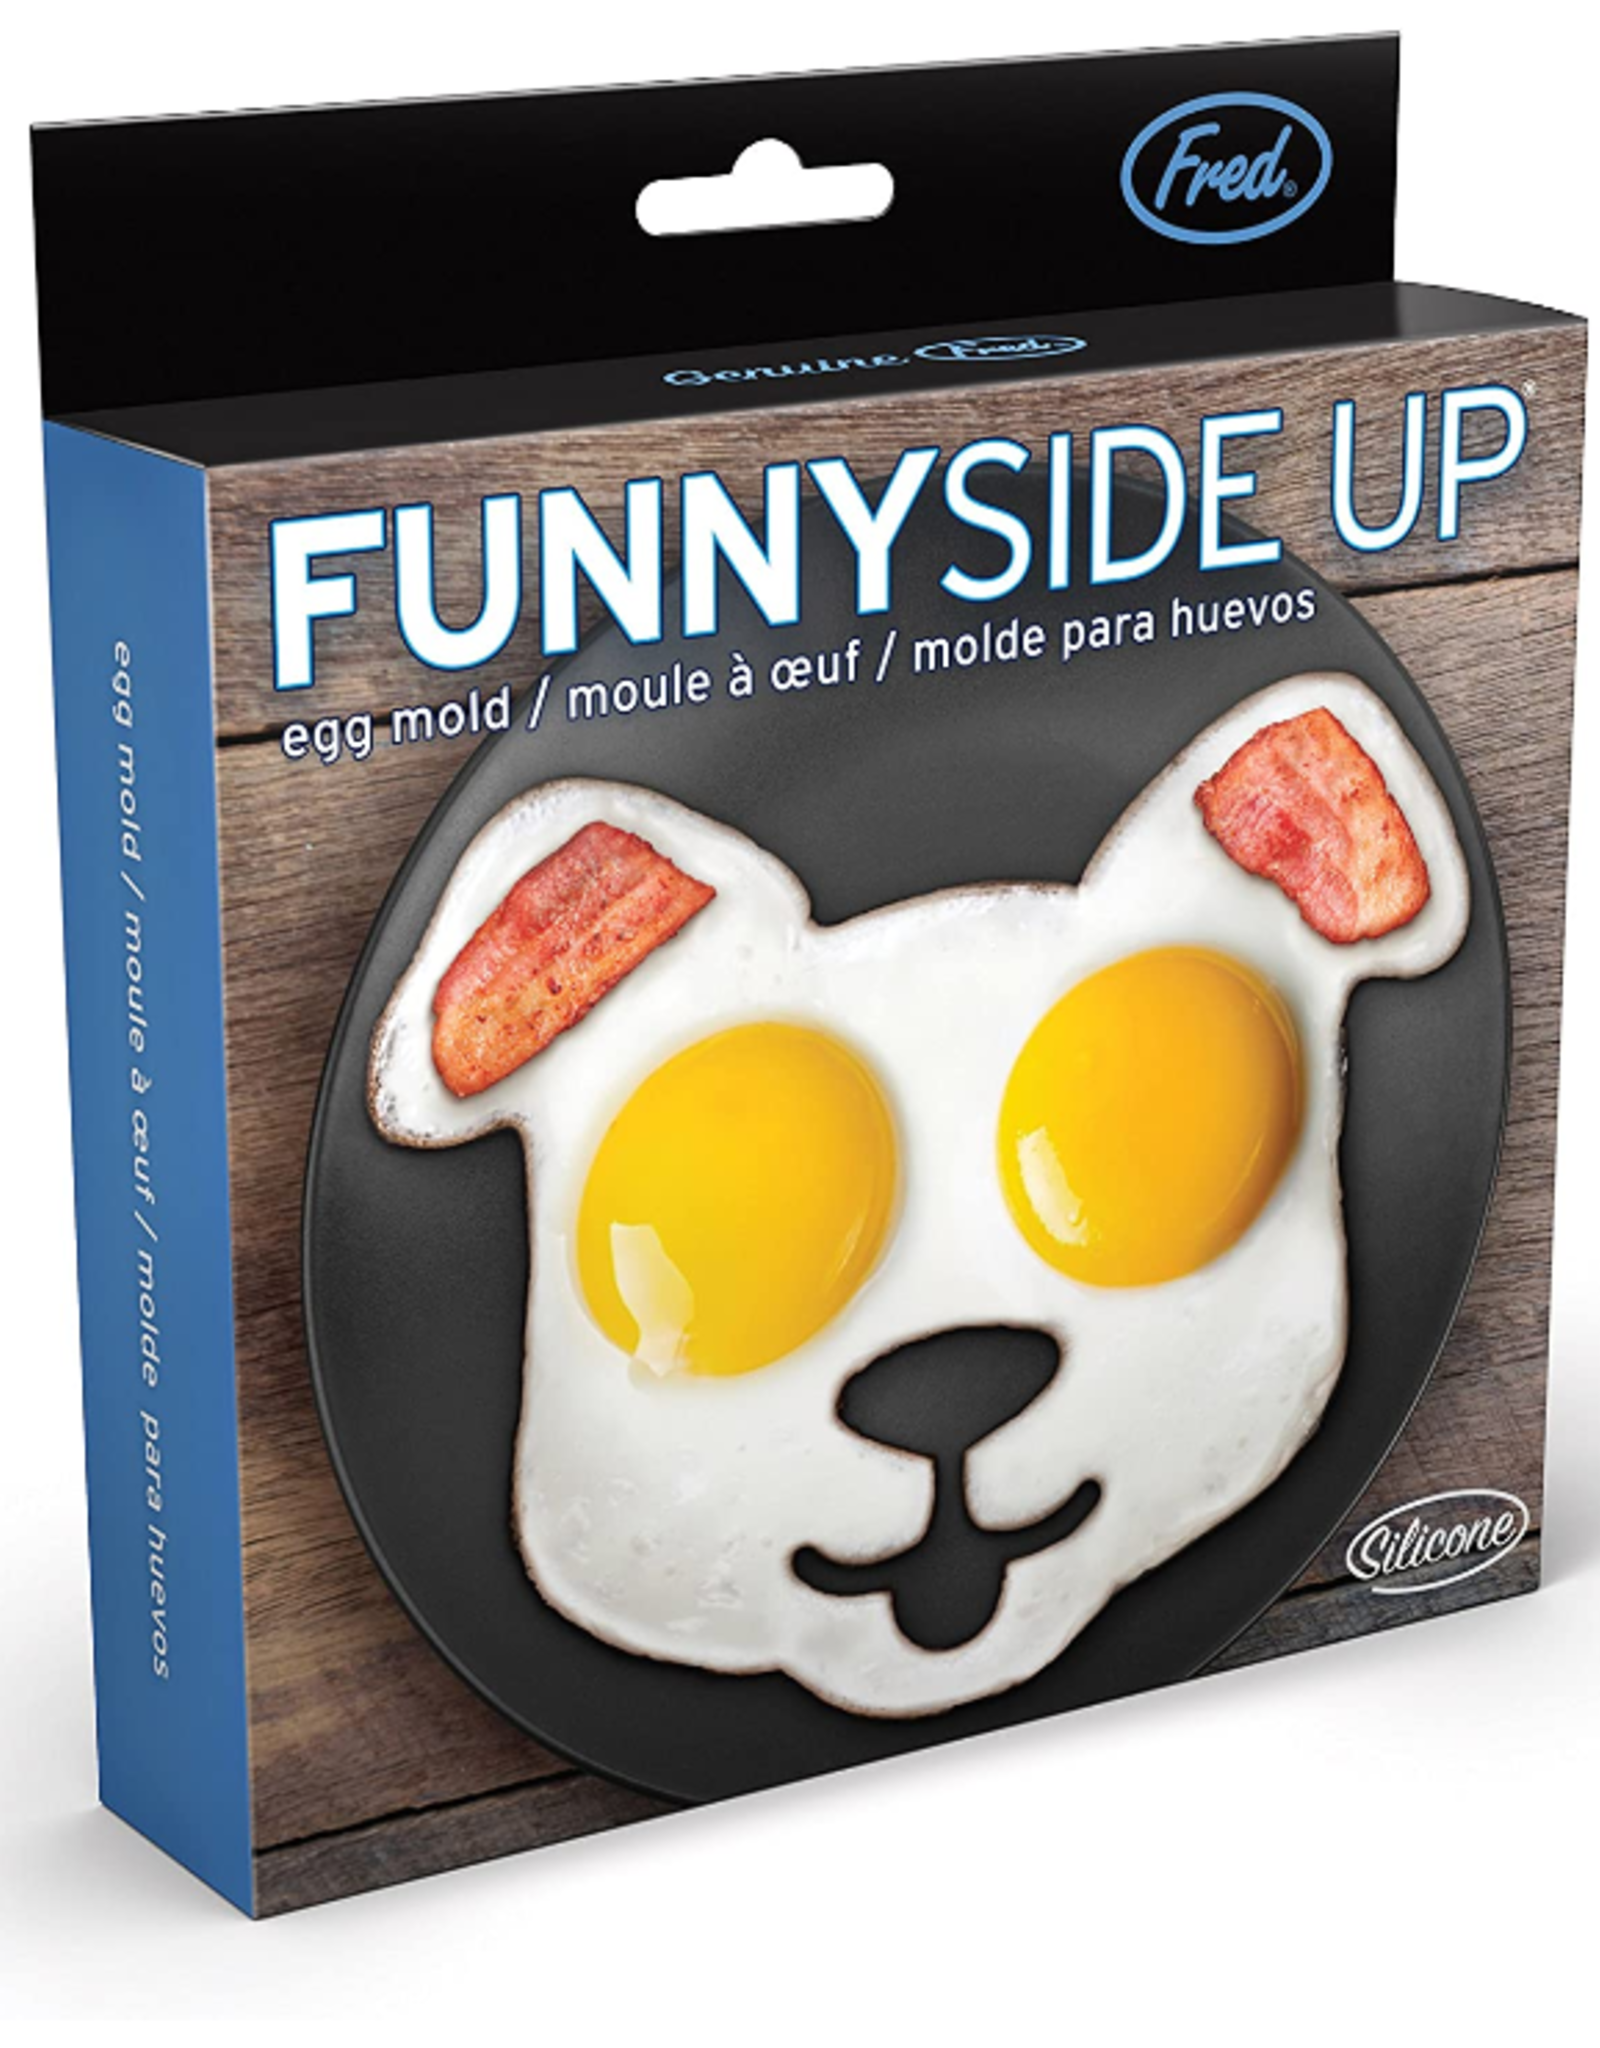 Fred & Friends Funny Side Up Egg Mold, Dog